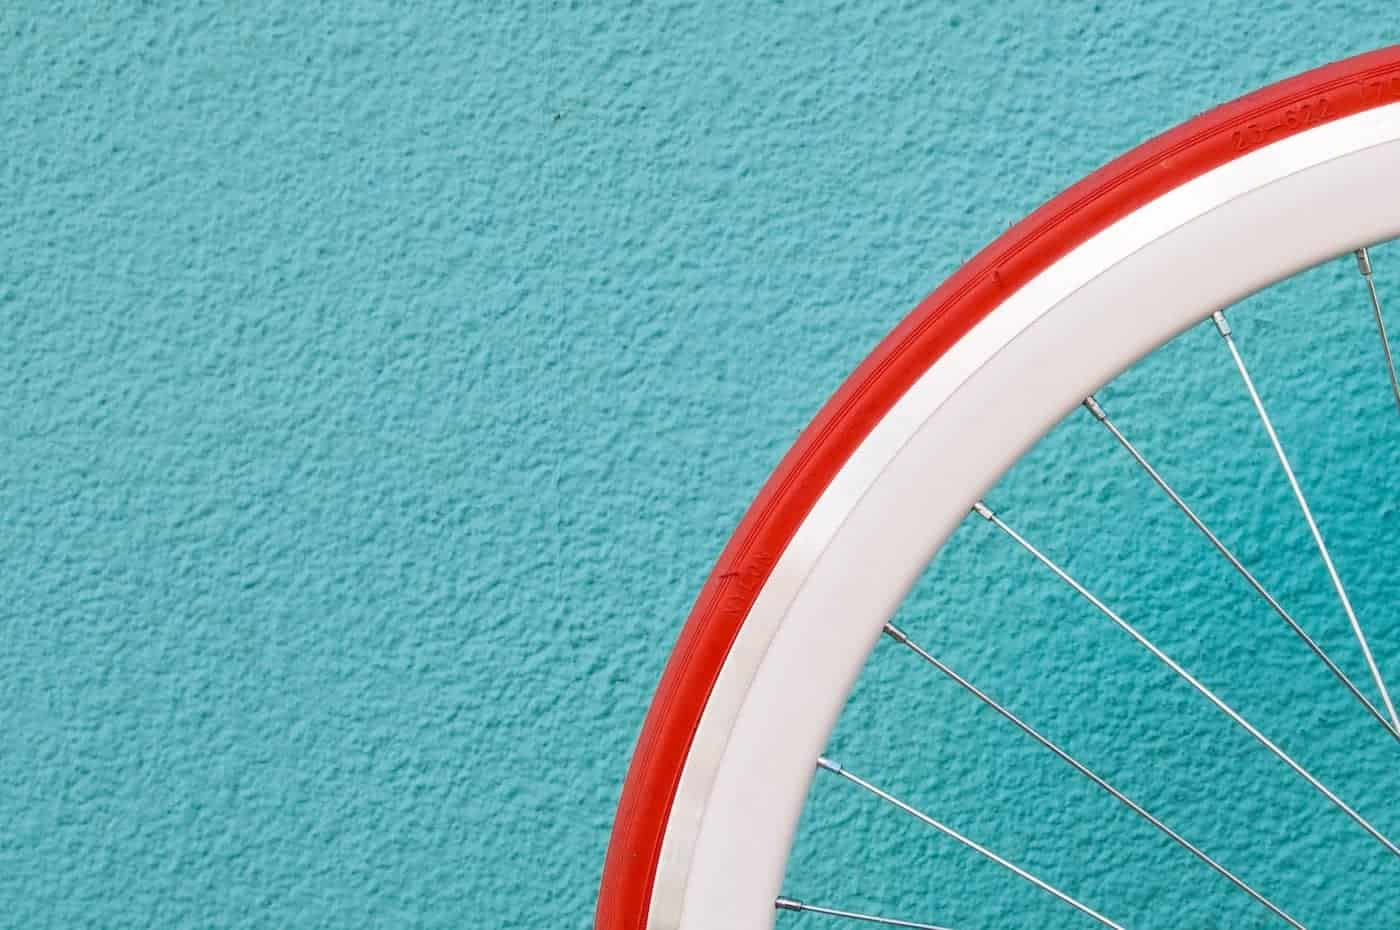 Minimal bike tire against a blue background